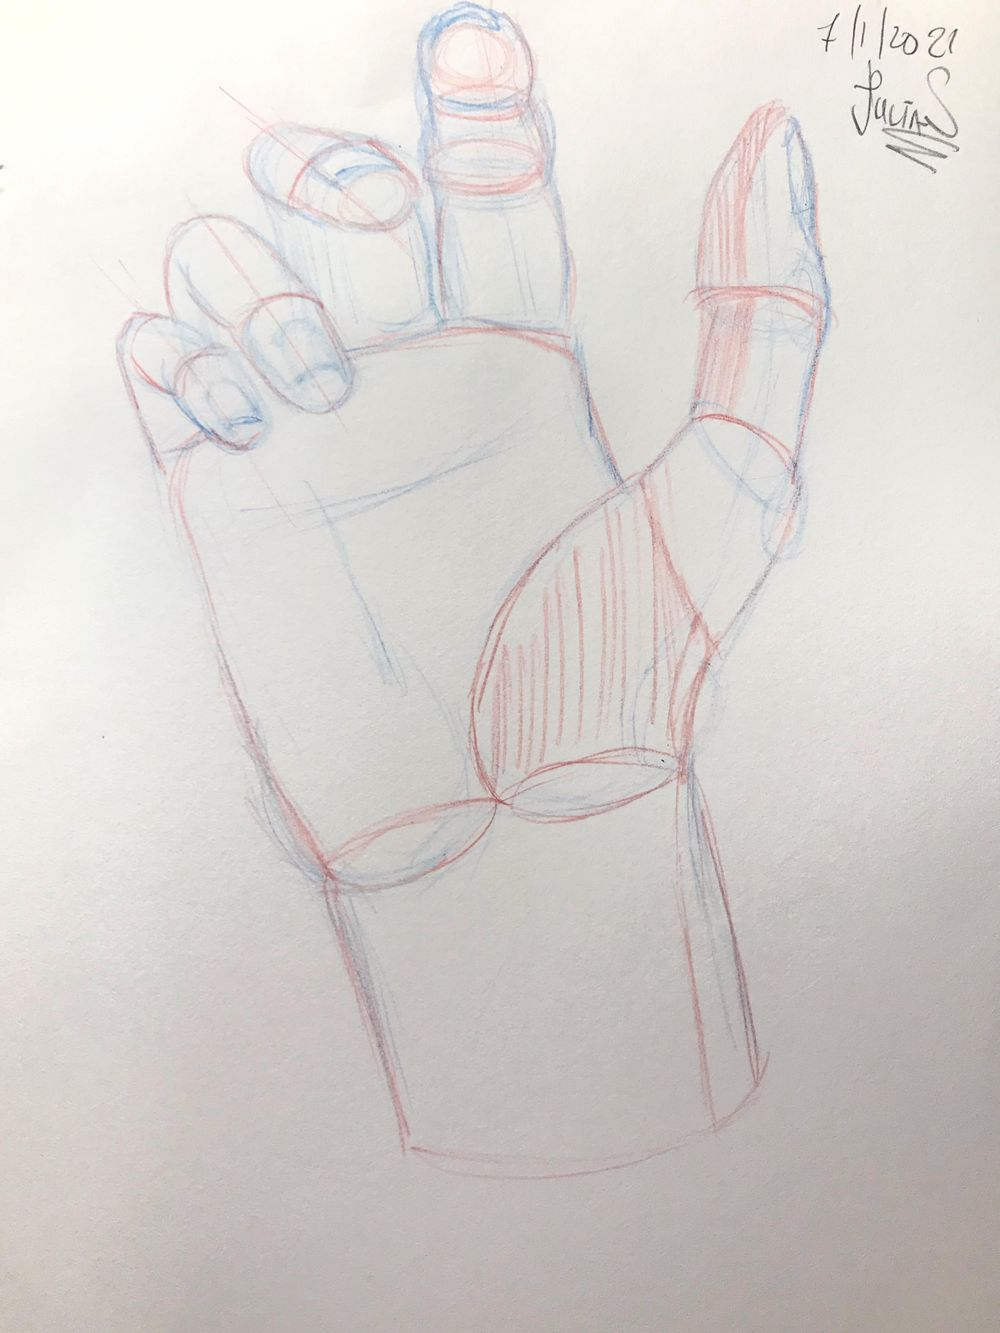 More hands - image 1 - student project